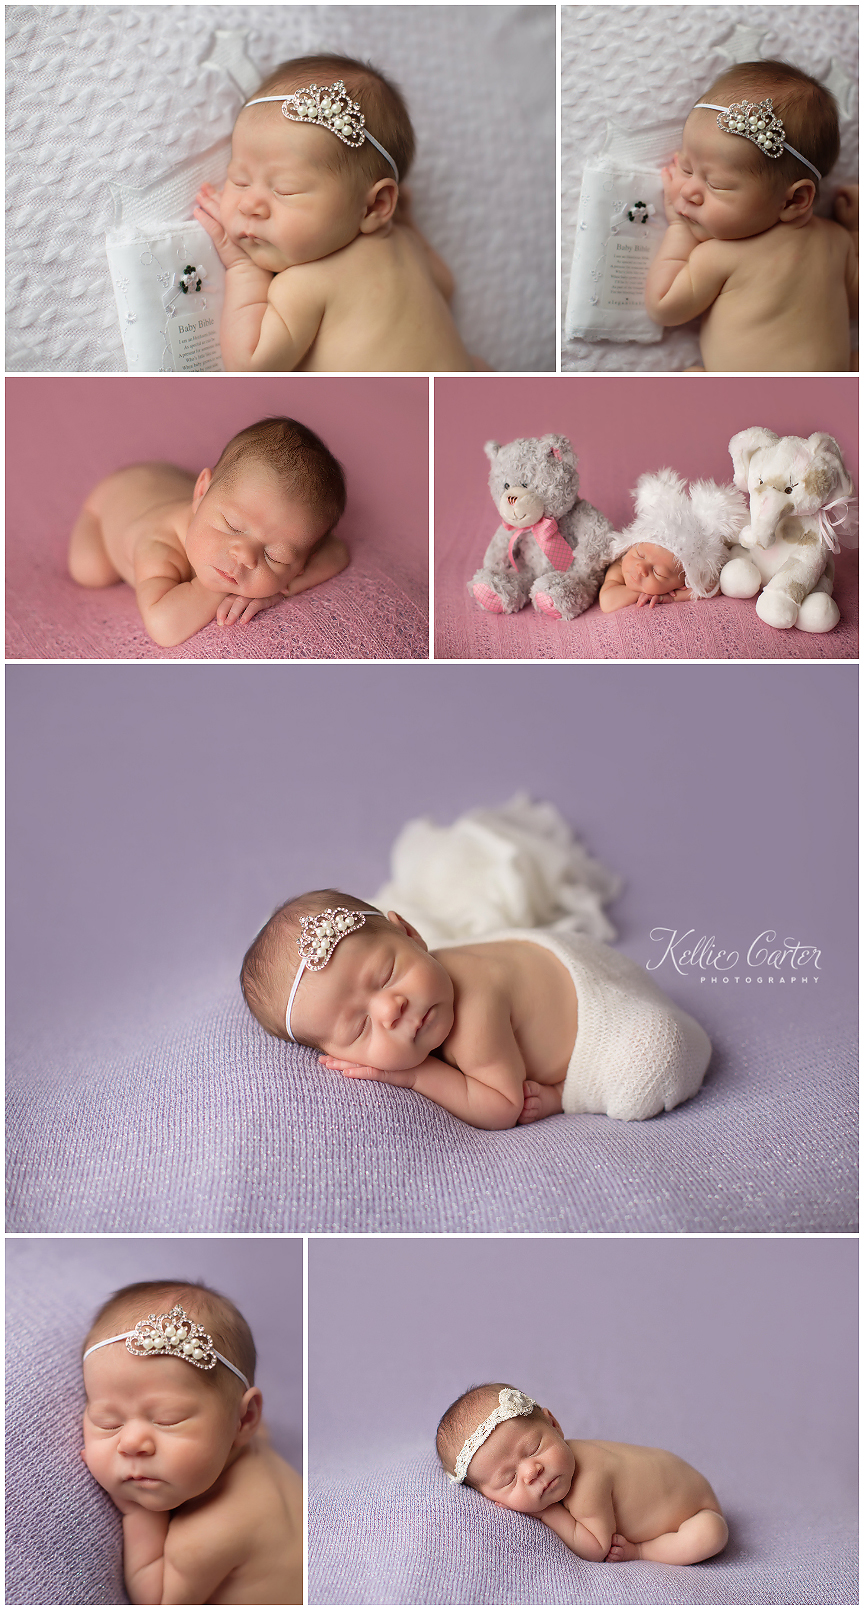 Kellie Carter Newborn Photographer Richmond Ky